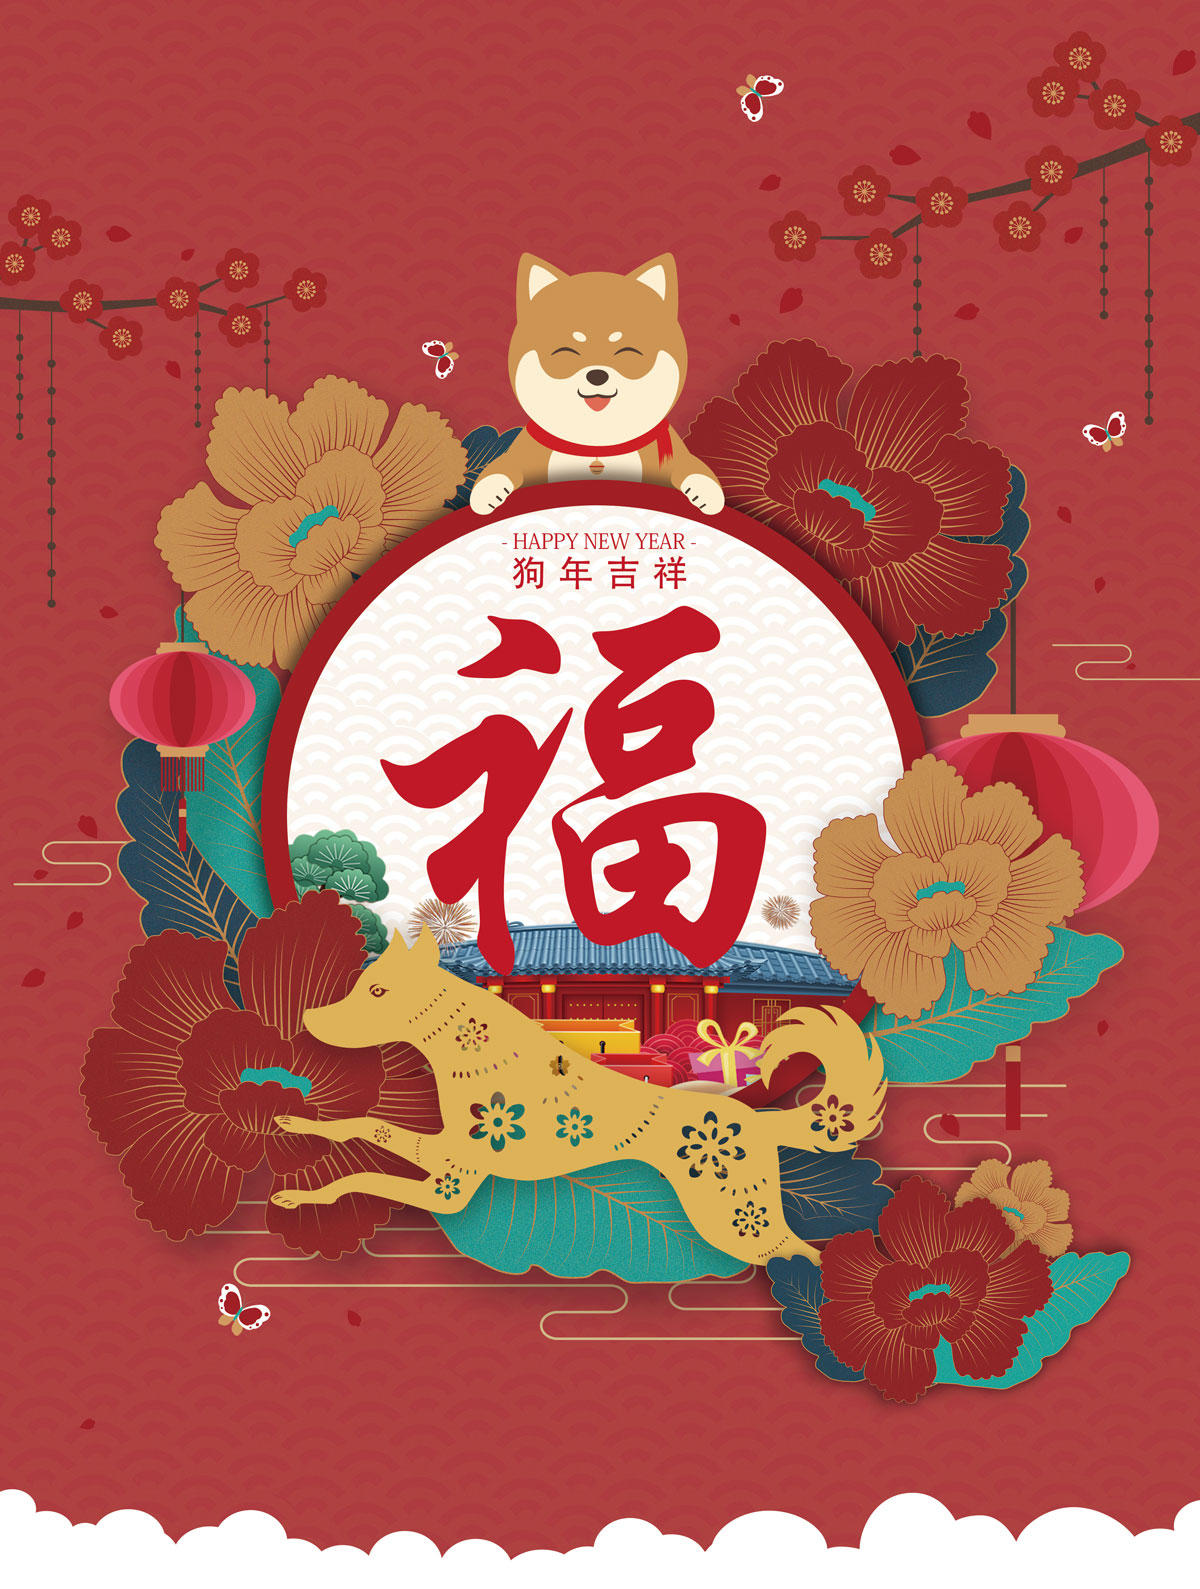 Creative design of chinese new year greeting poster china psd chinesefontdesign 2018 02 06 14 17 36 086088 creative design of chinese new year m4hsunfo Choice Image